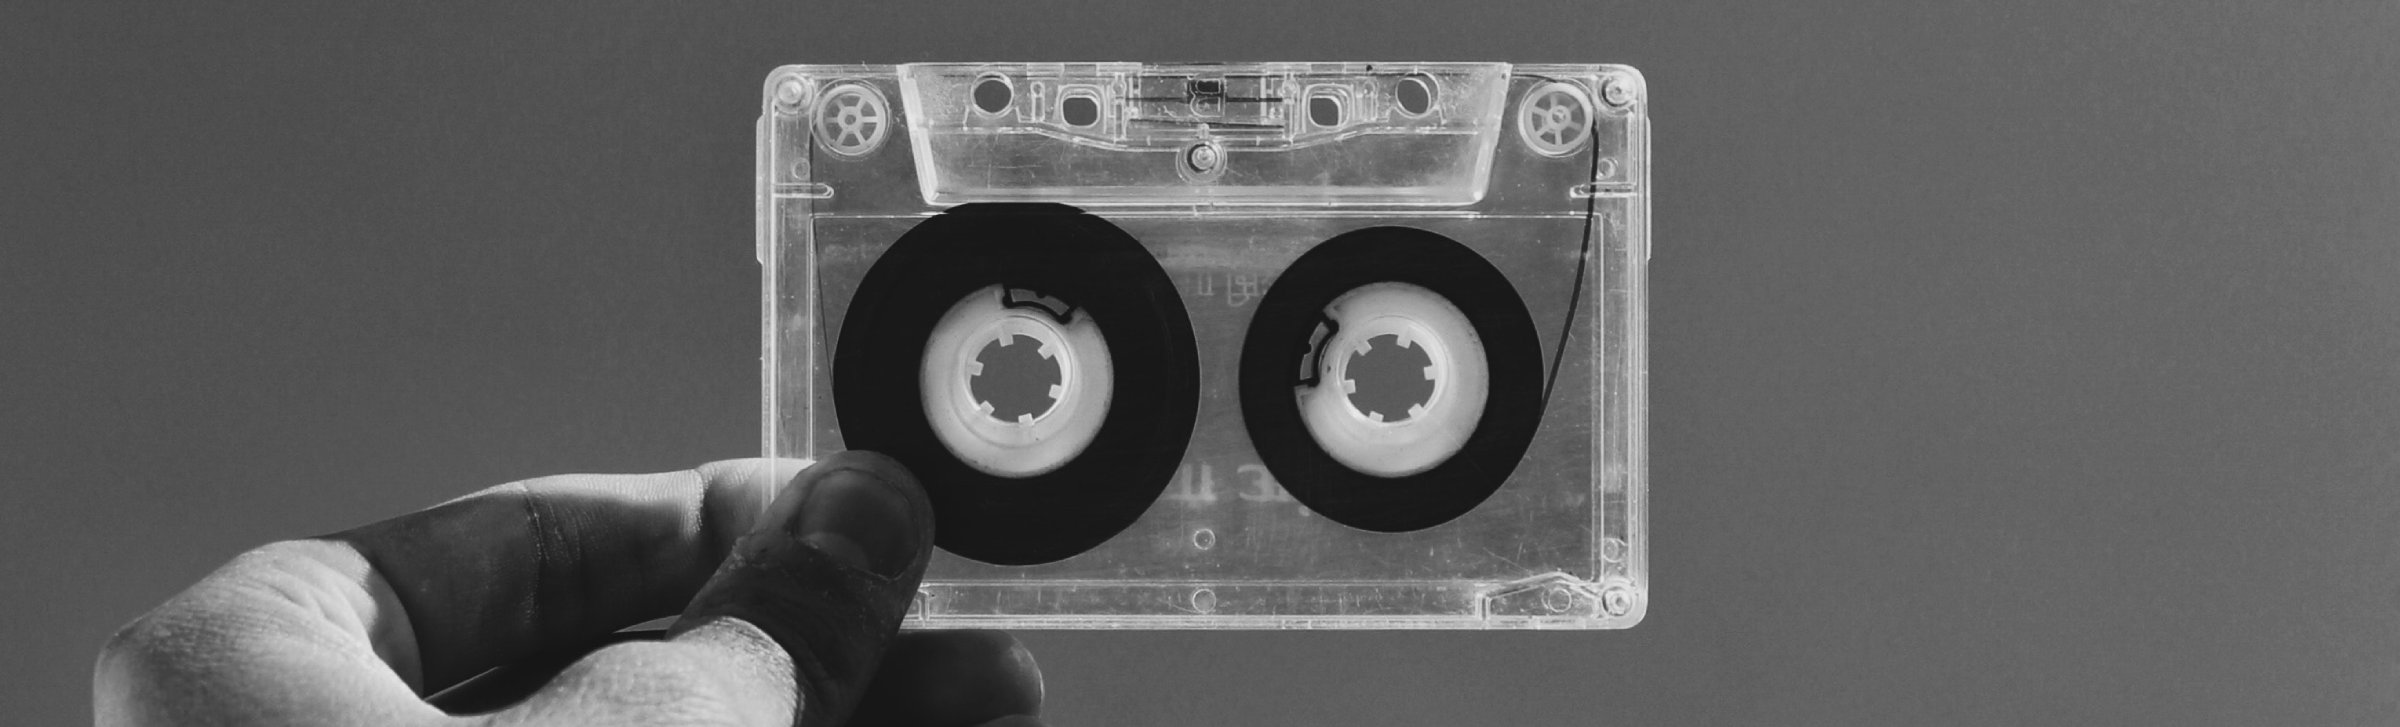 black-and-white-cassette-tape-classic-1745936